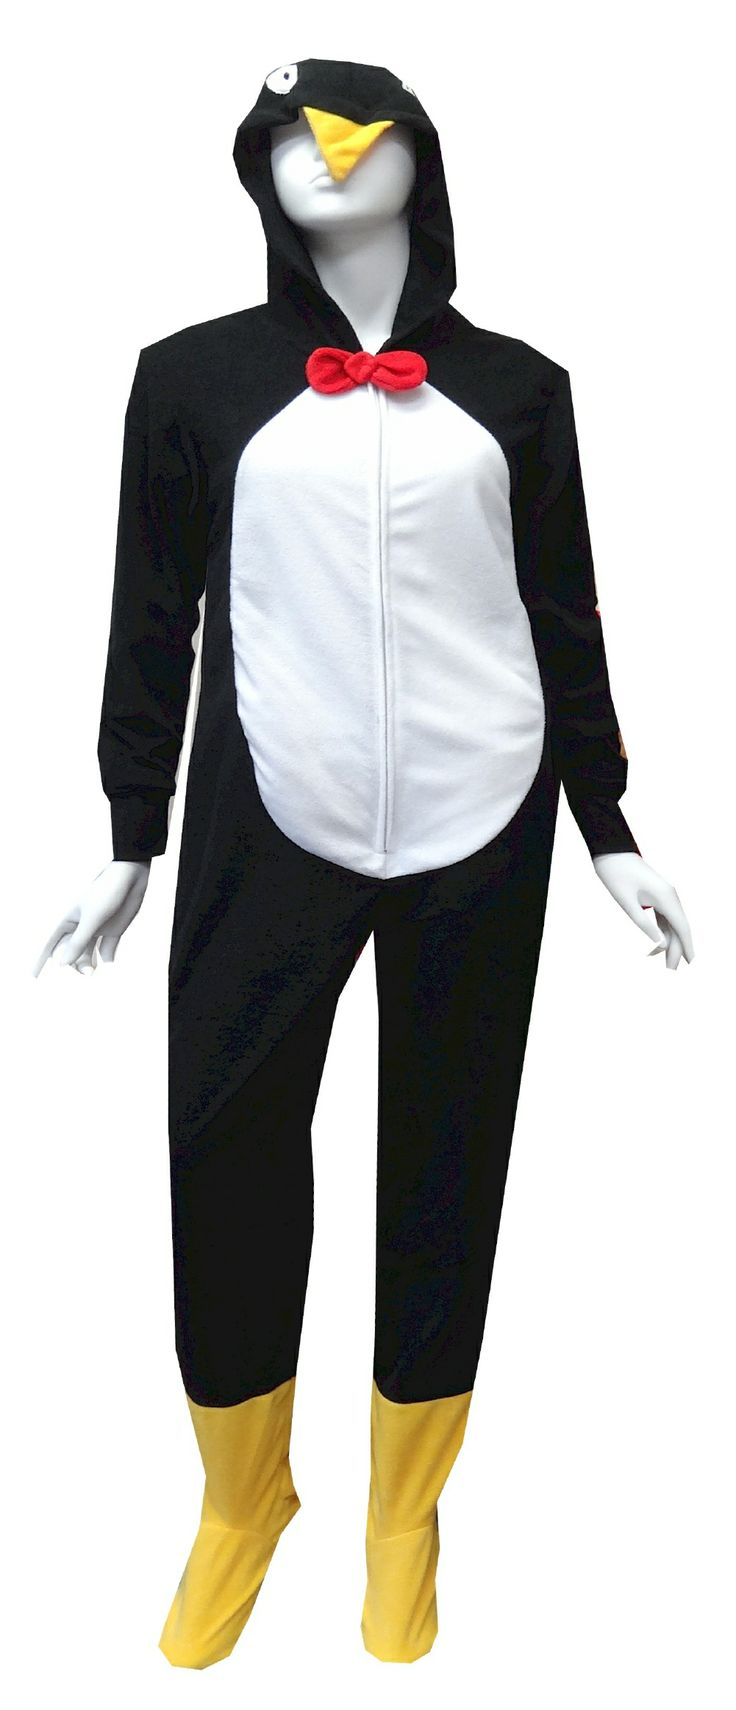 Penguin Hooded Onesie Footie Pajamas With Bow Tie